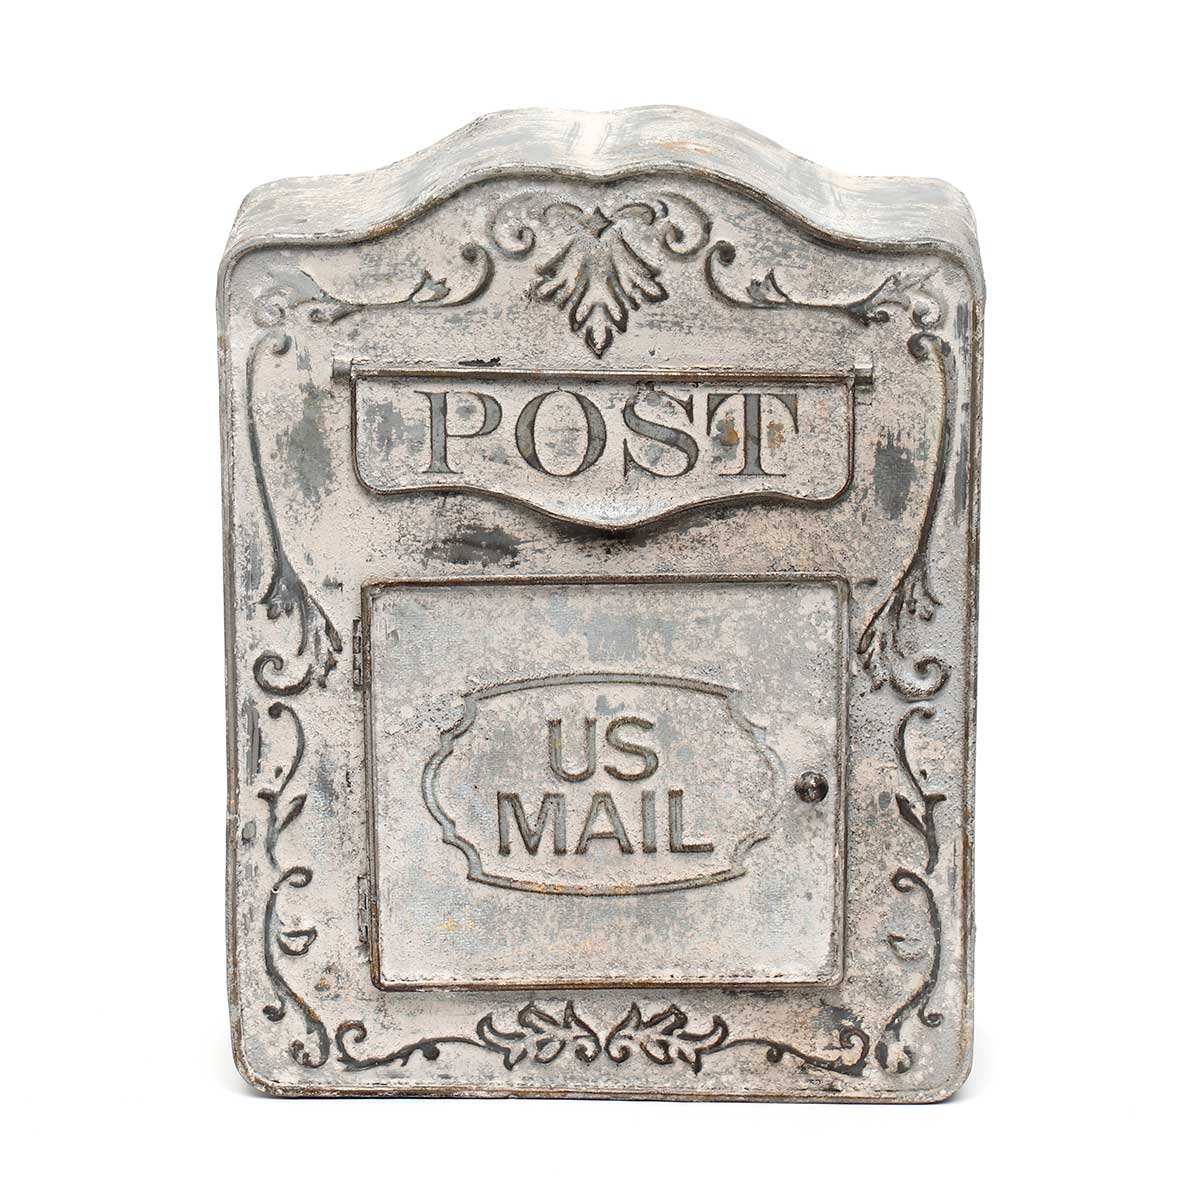 "PEWTER METAL US MAIL DECORATIVE POST BOX 10.25""x3.5""x13.5"""